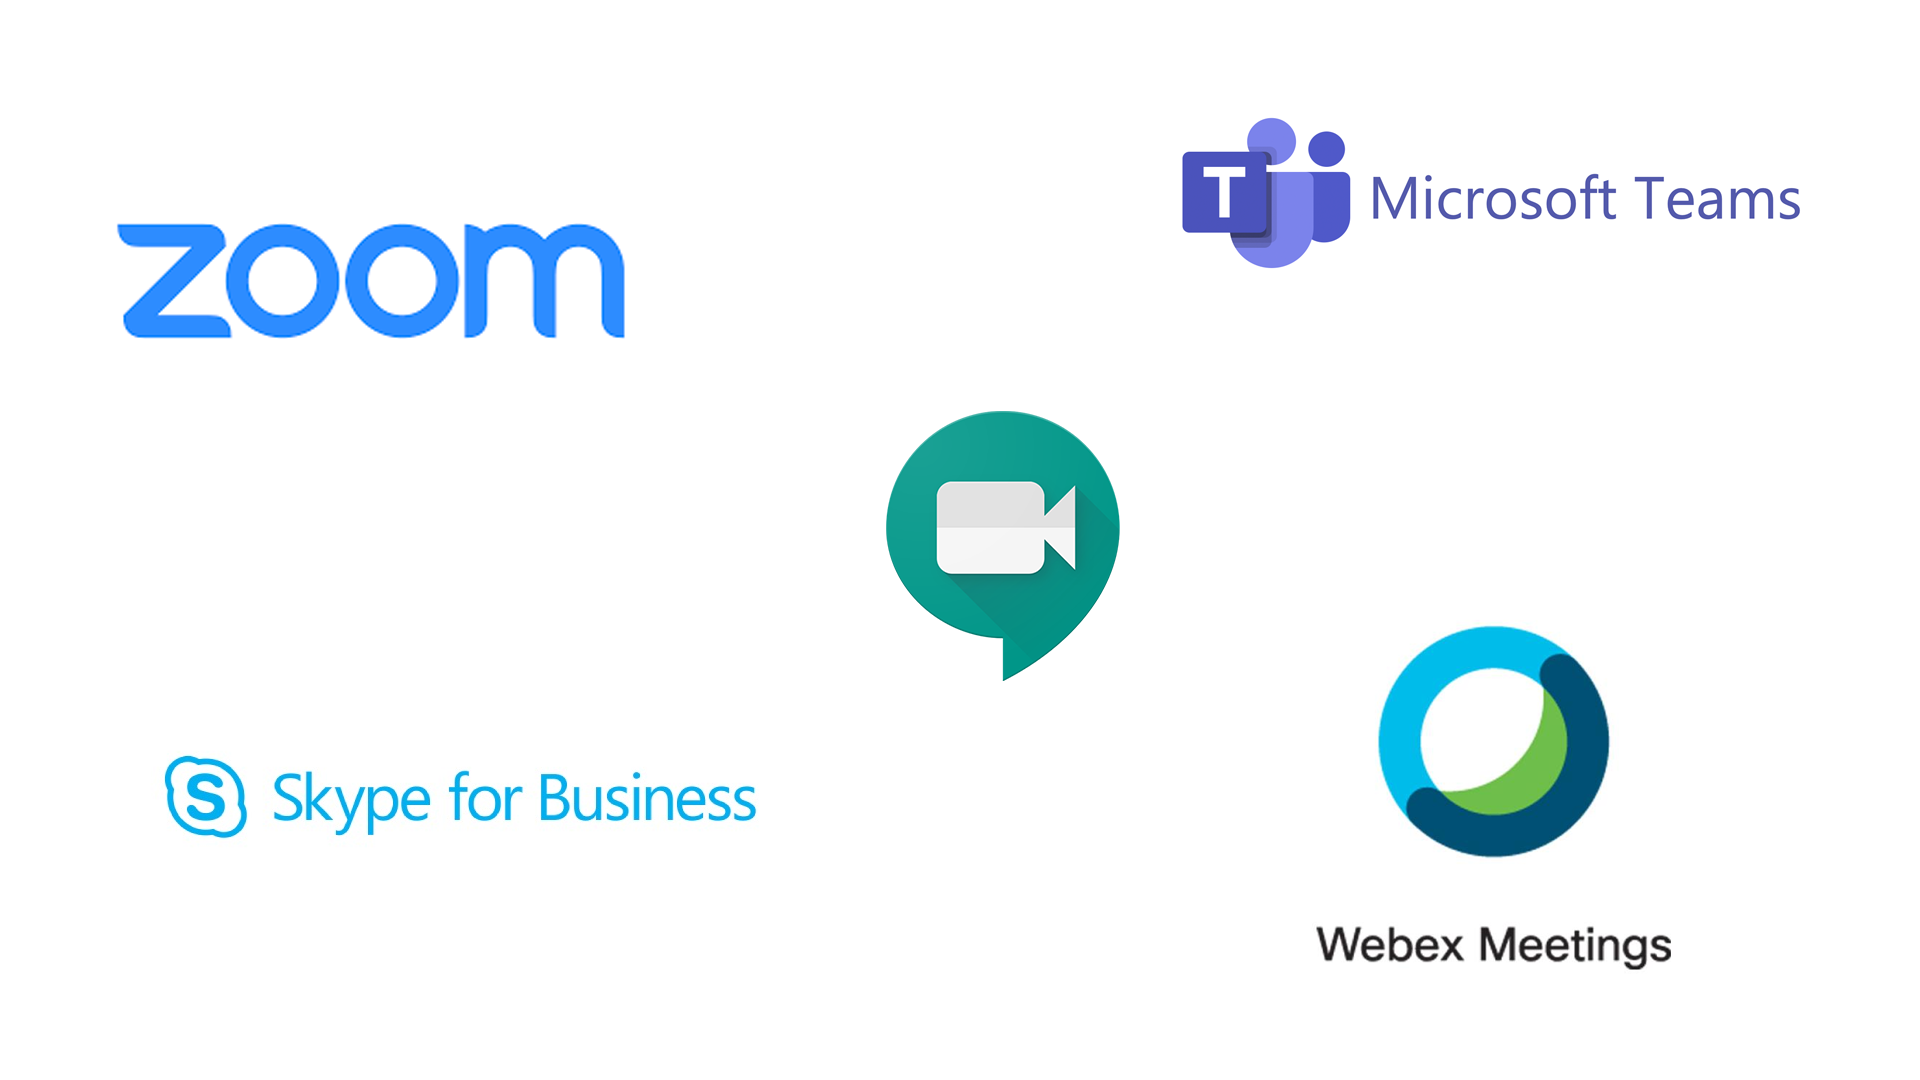 zoom,teams,skype,meet,webex meetings